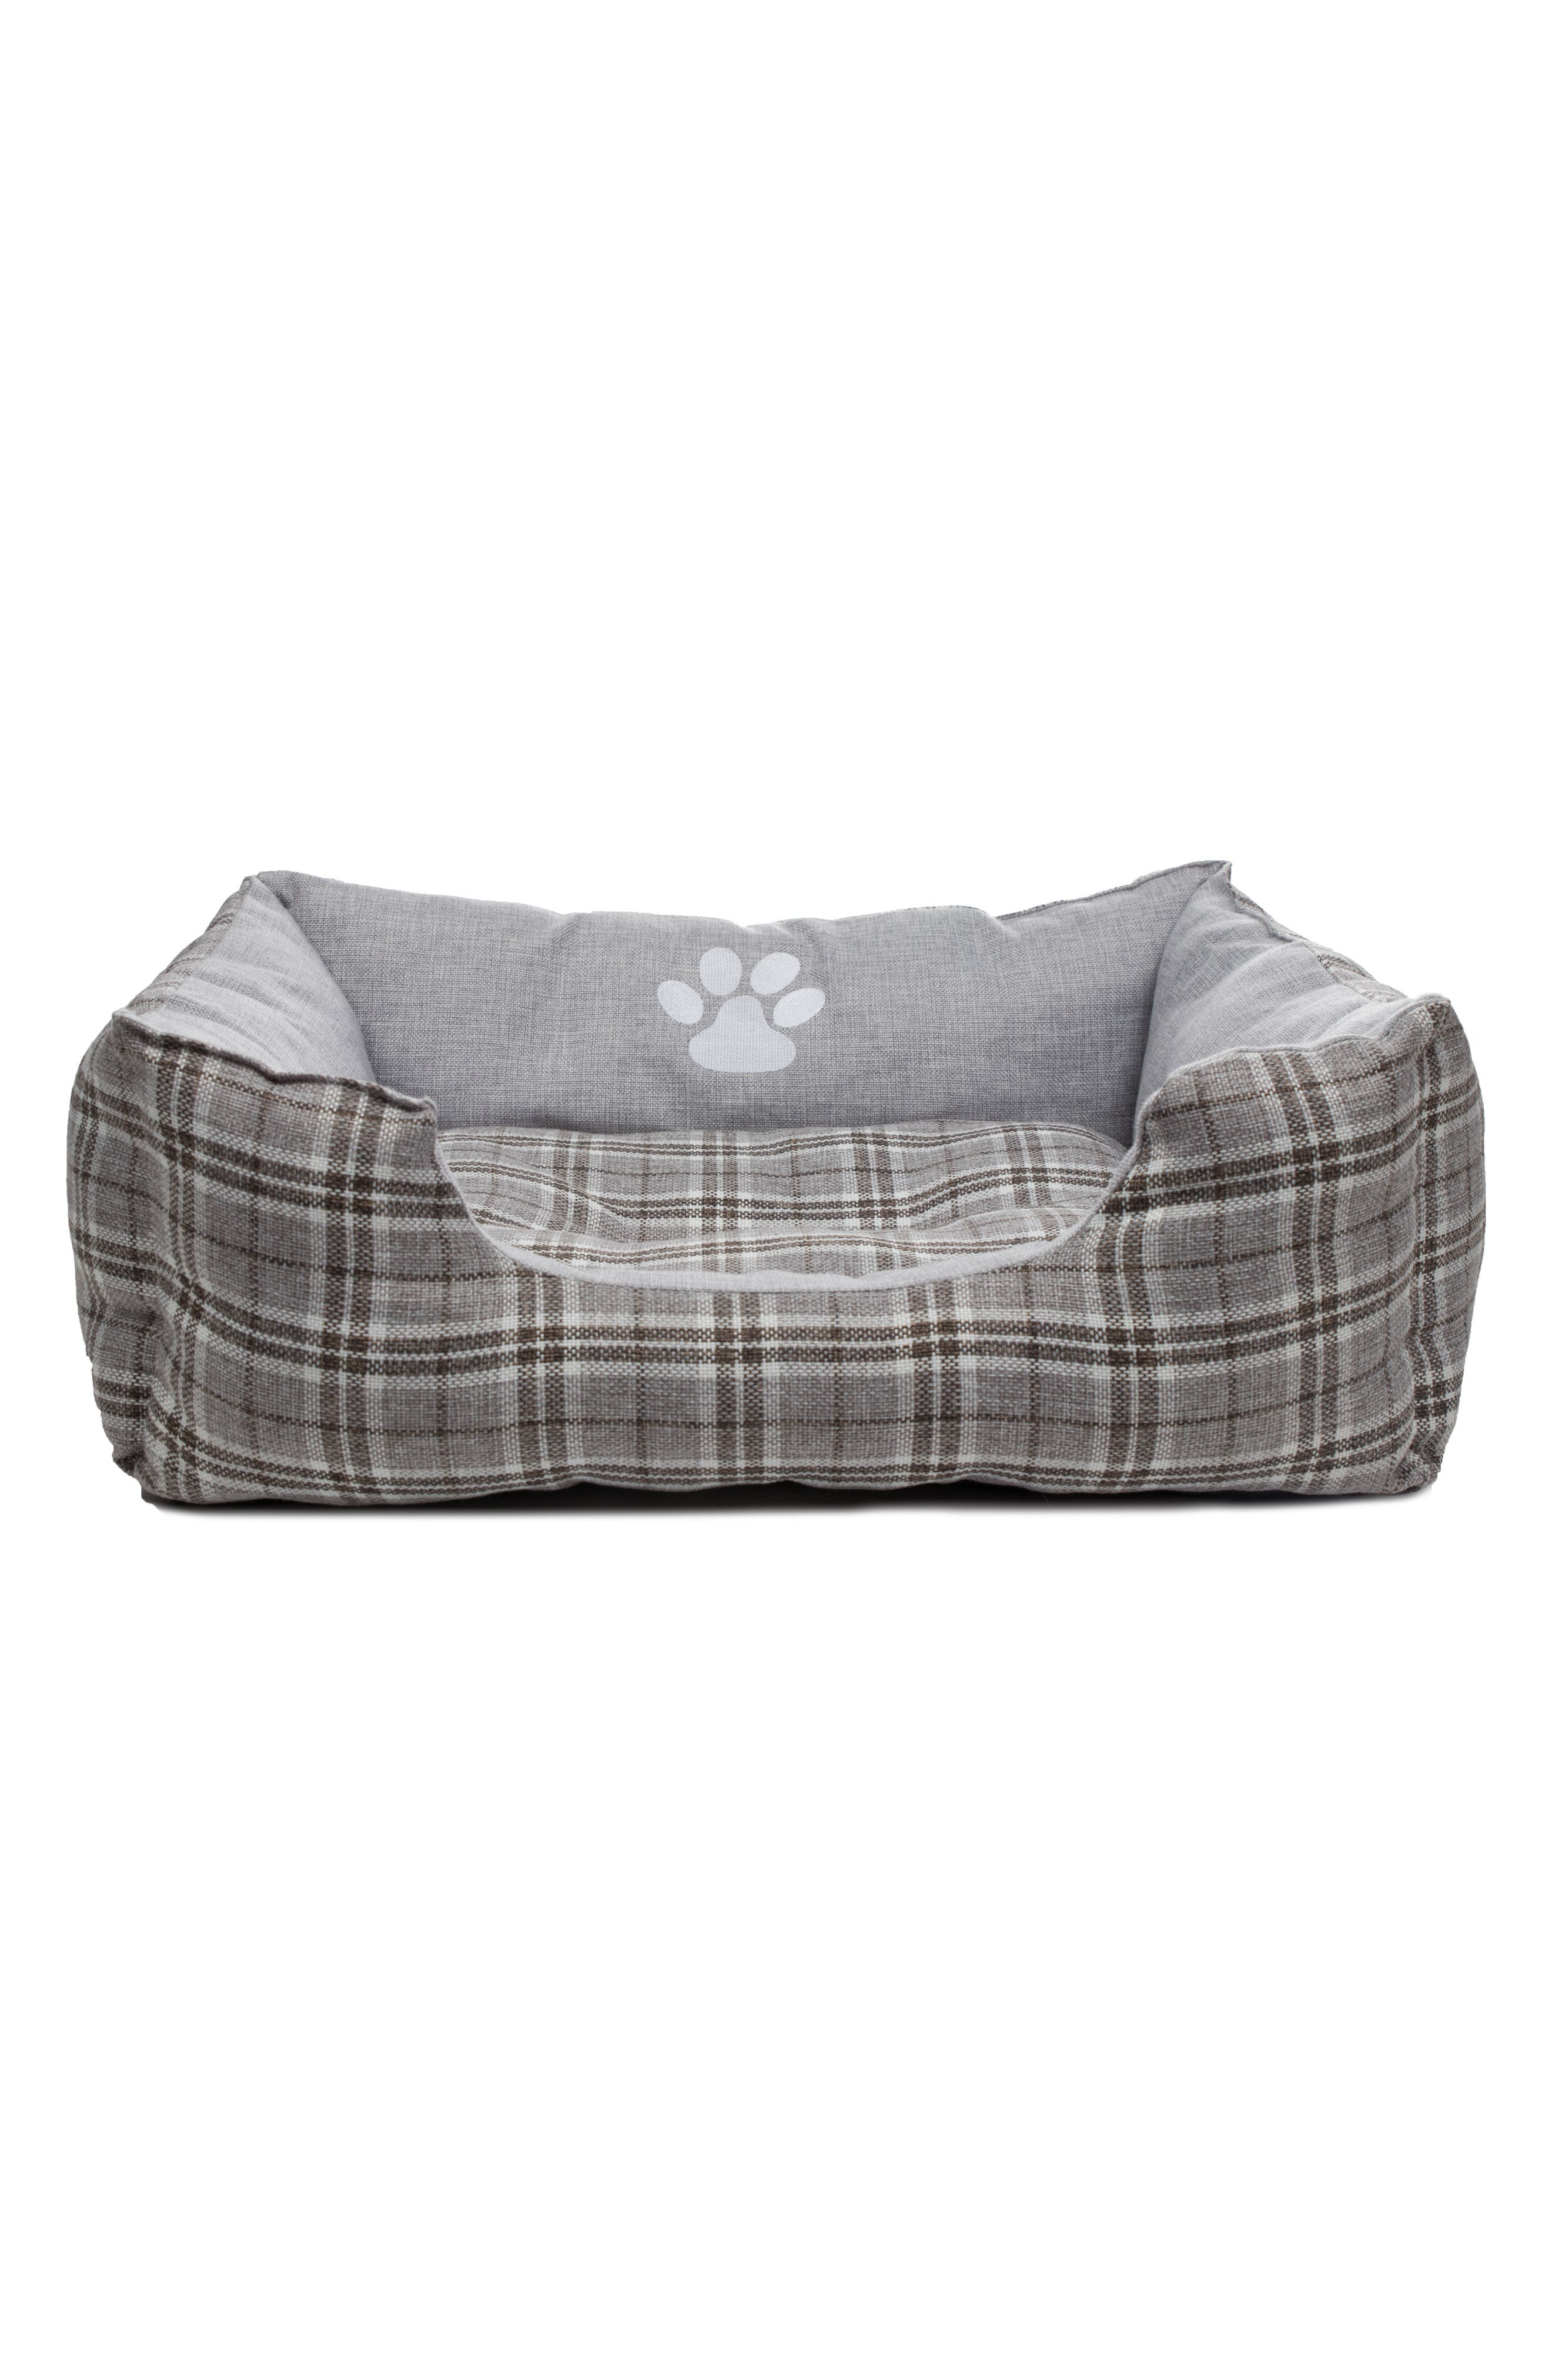 Harlee Large Square Pet Bed,                         Main,                         color, 020